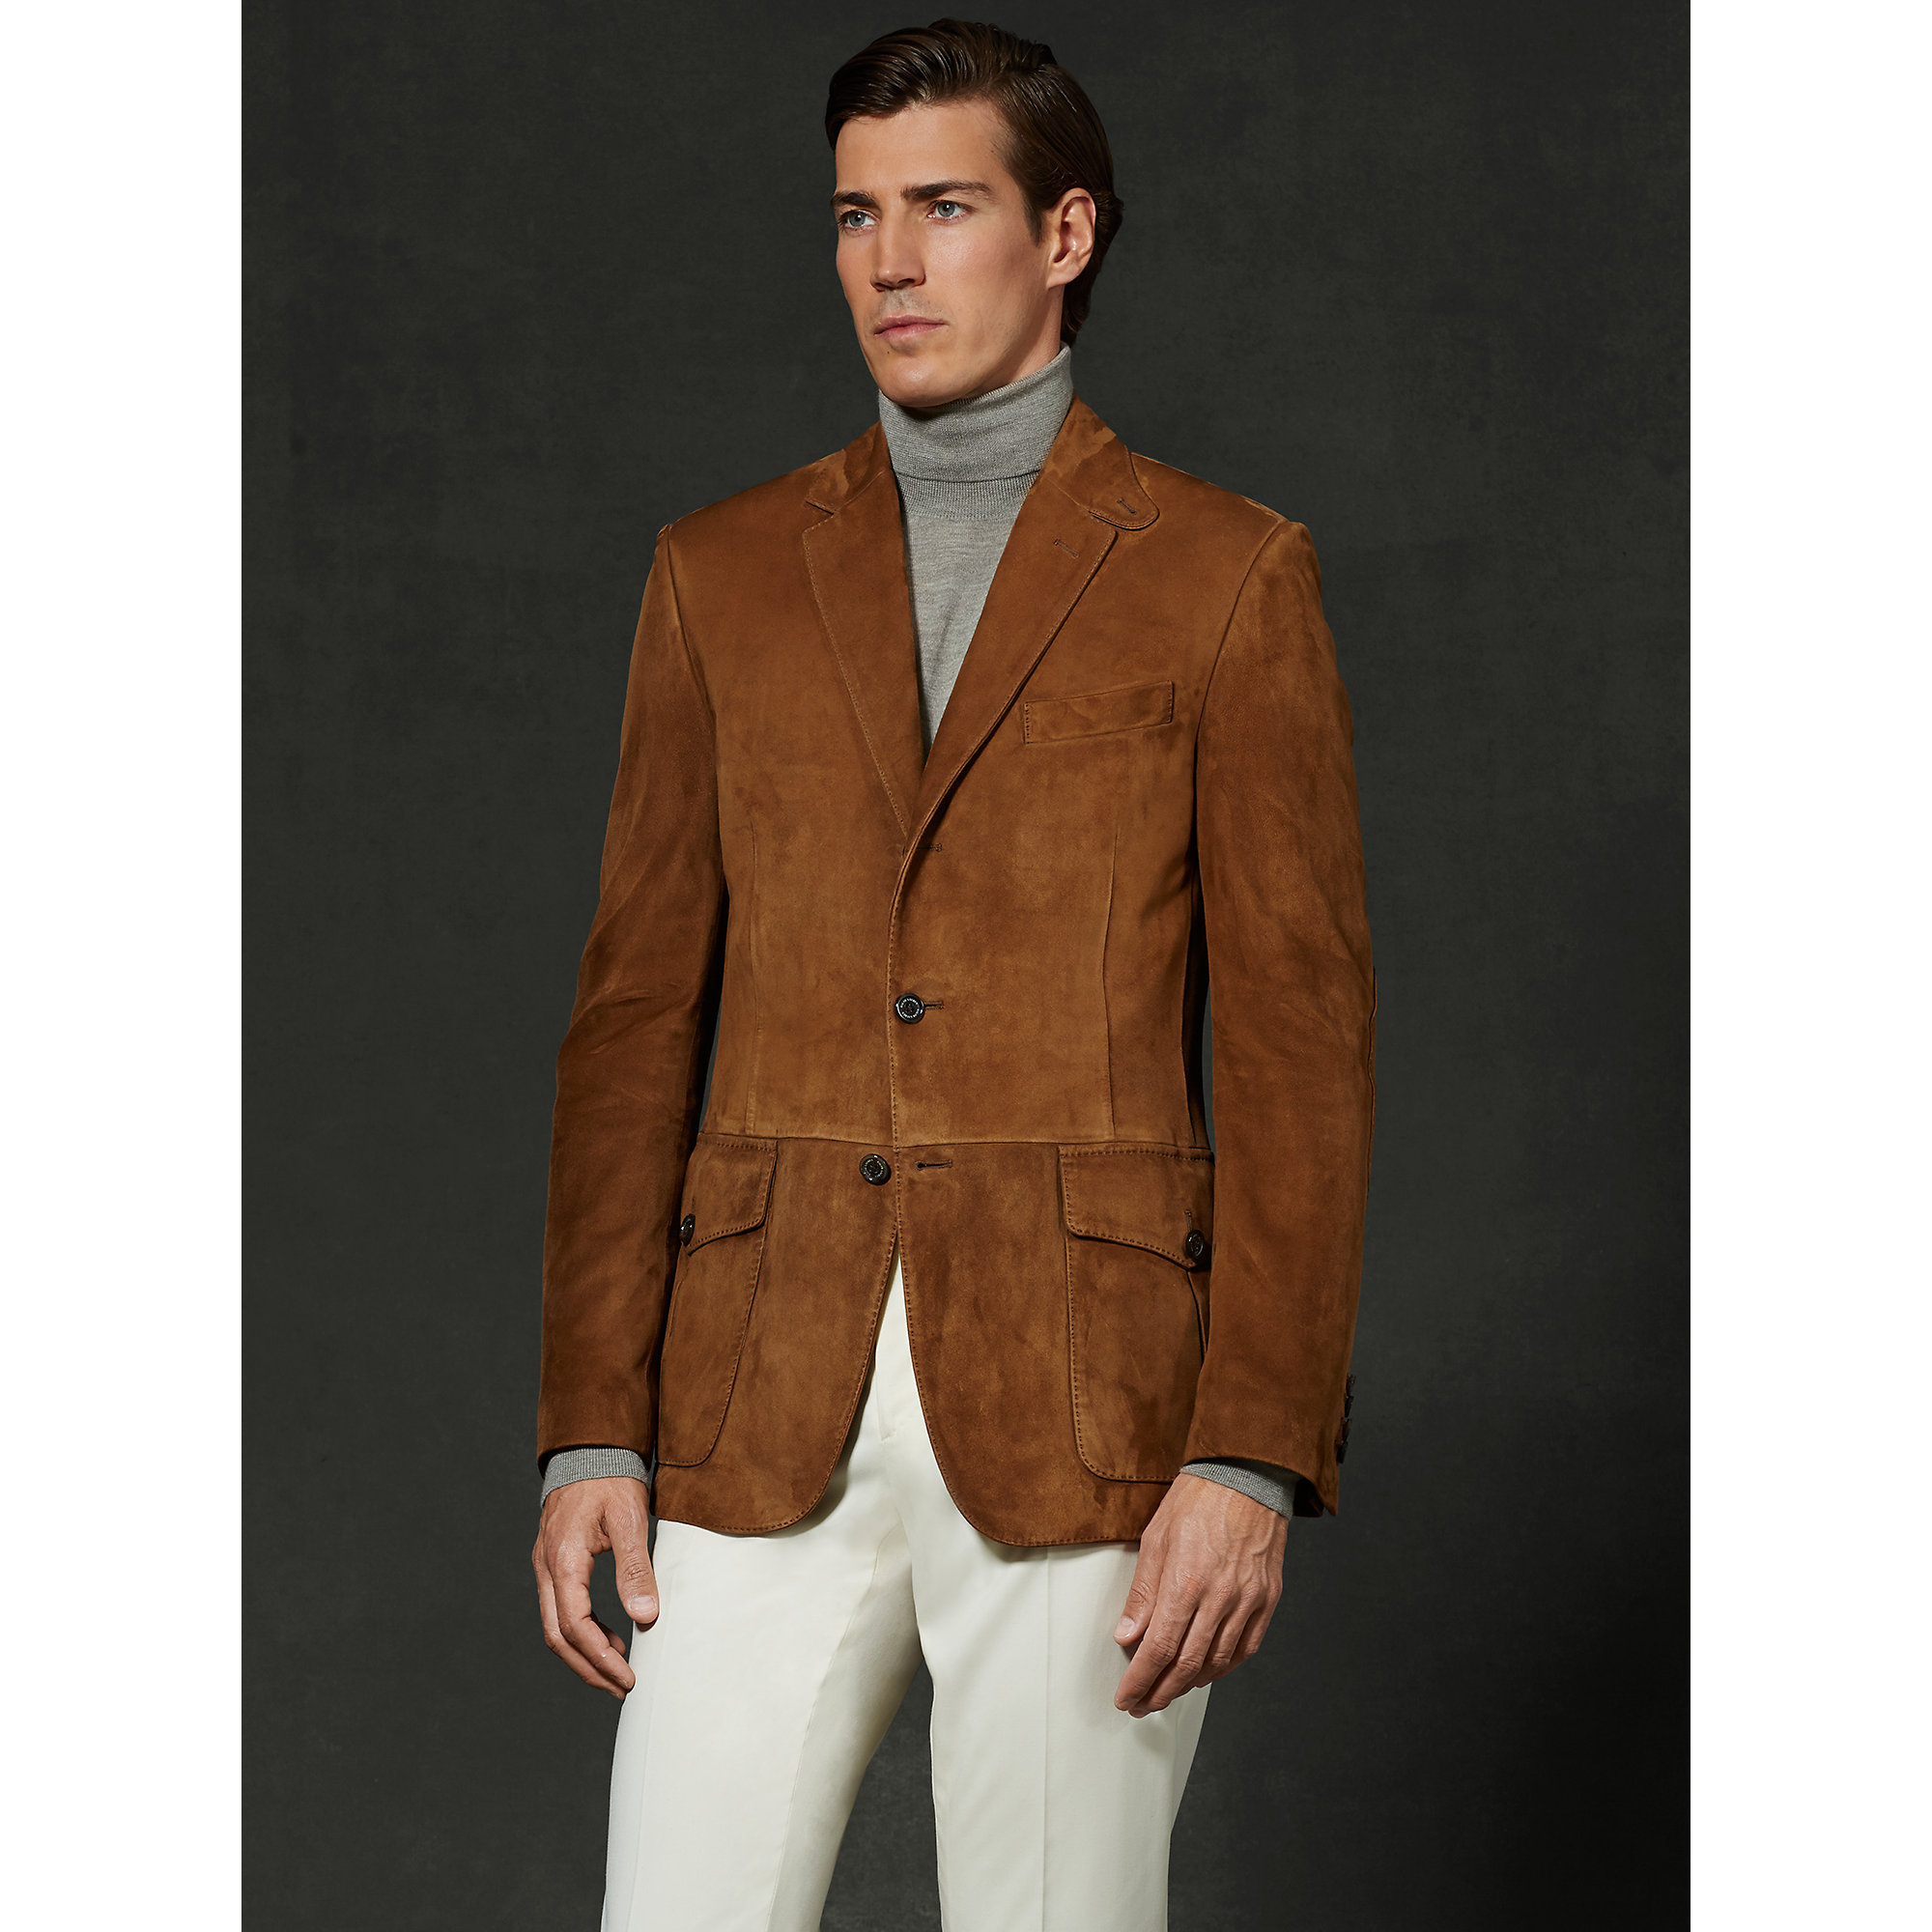 Ralph lauren purple label Suede Suffolk Sport Coat in Brown for ...